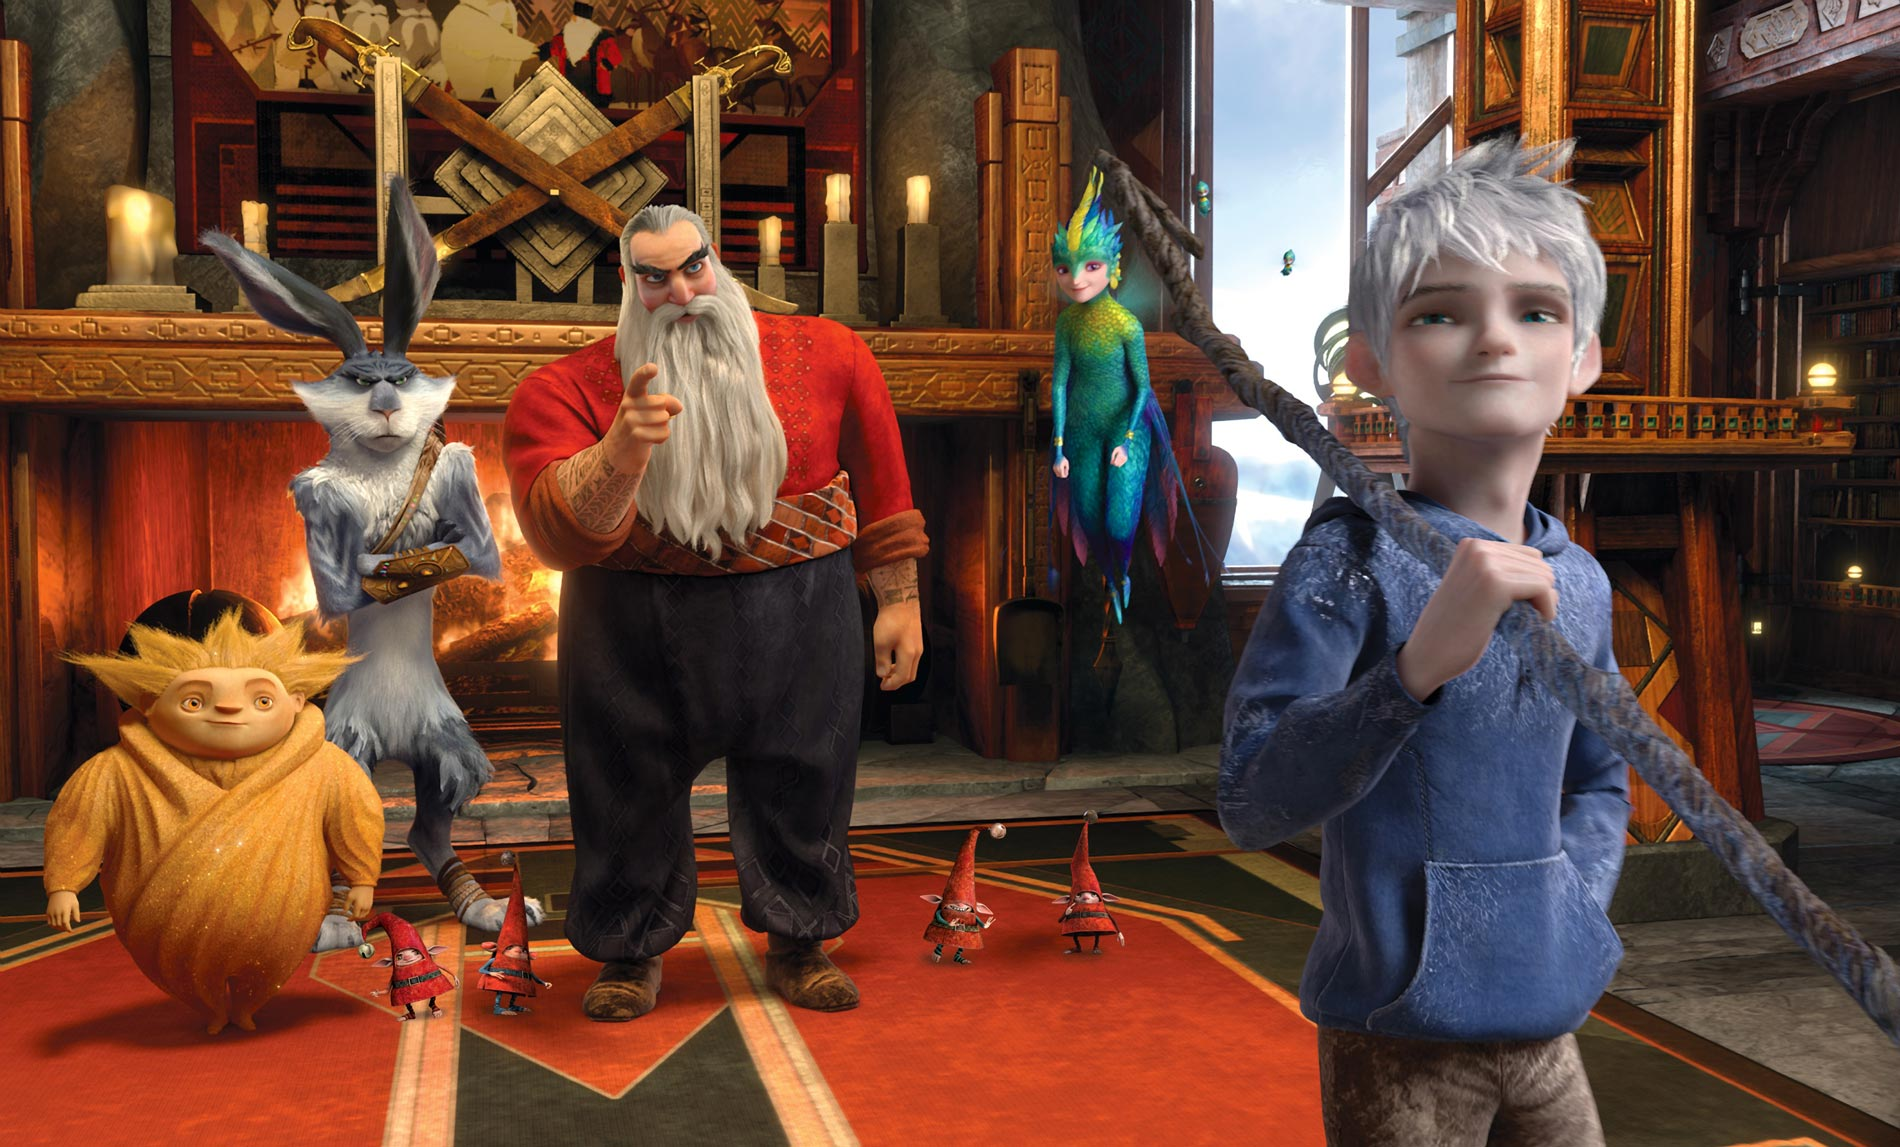 Rise of the guardians 3 d blu ray review beyond the - Pics of rise of the guardians ...